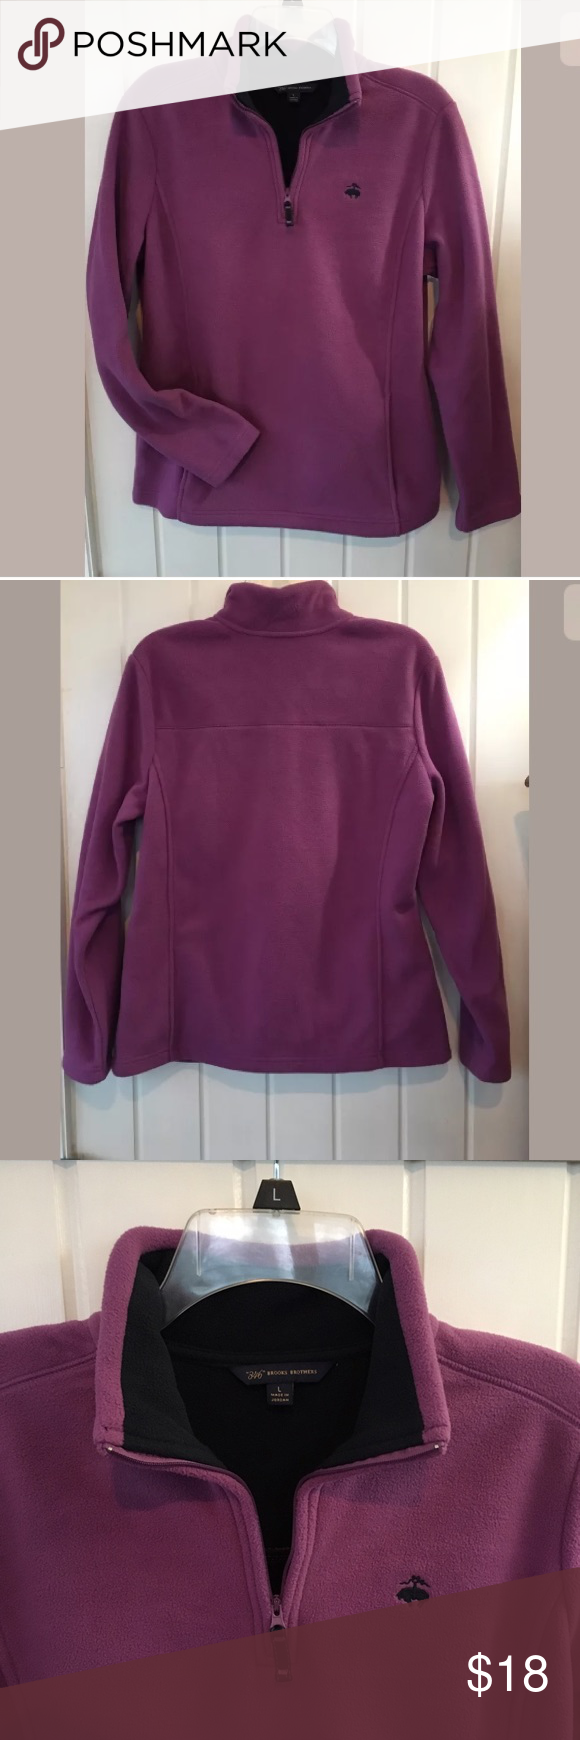 Brooks Brothers Fleece Pullover Size L Perfect winter pullover by Brooks Brothers.  Size Large in GREAT condition Brooks Brothers Tops Sweatshirts & Hoodies